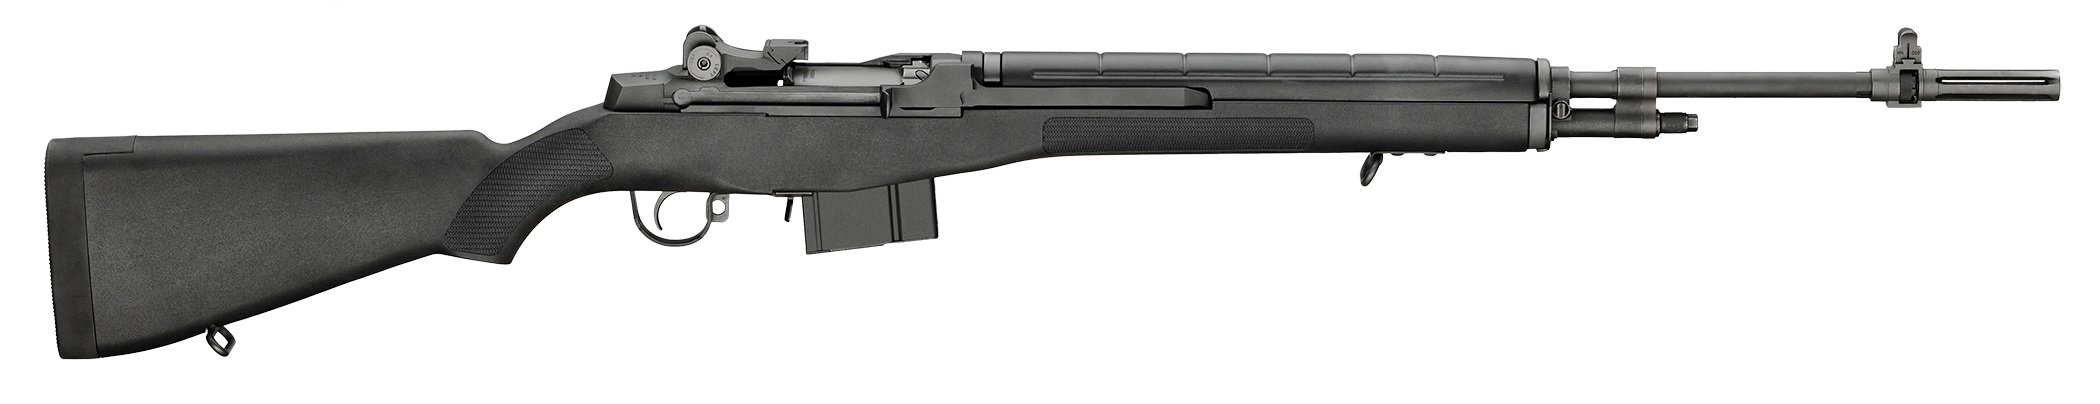 SPRINGFIELD M1A c.308 BLACK NON RESTRICTED RIFLE MA9106